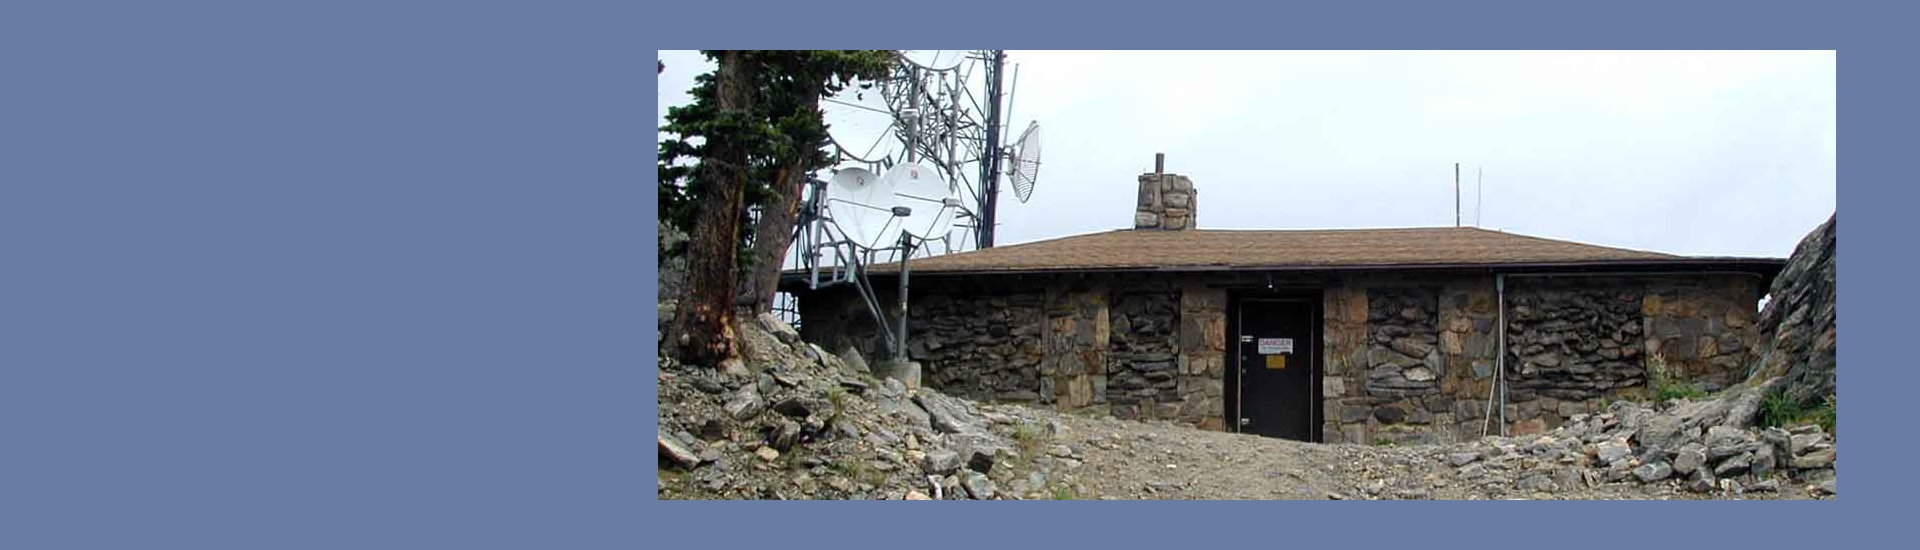 house of radios at squaw mountain hosted the first ham repeater at squaw